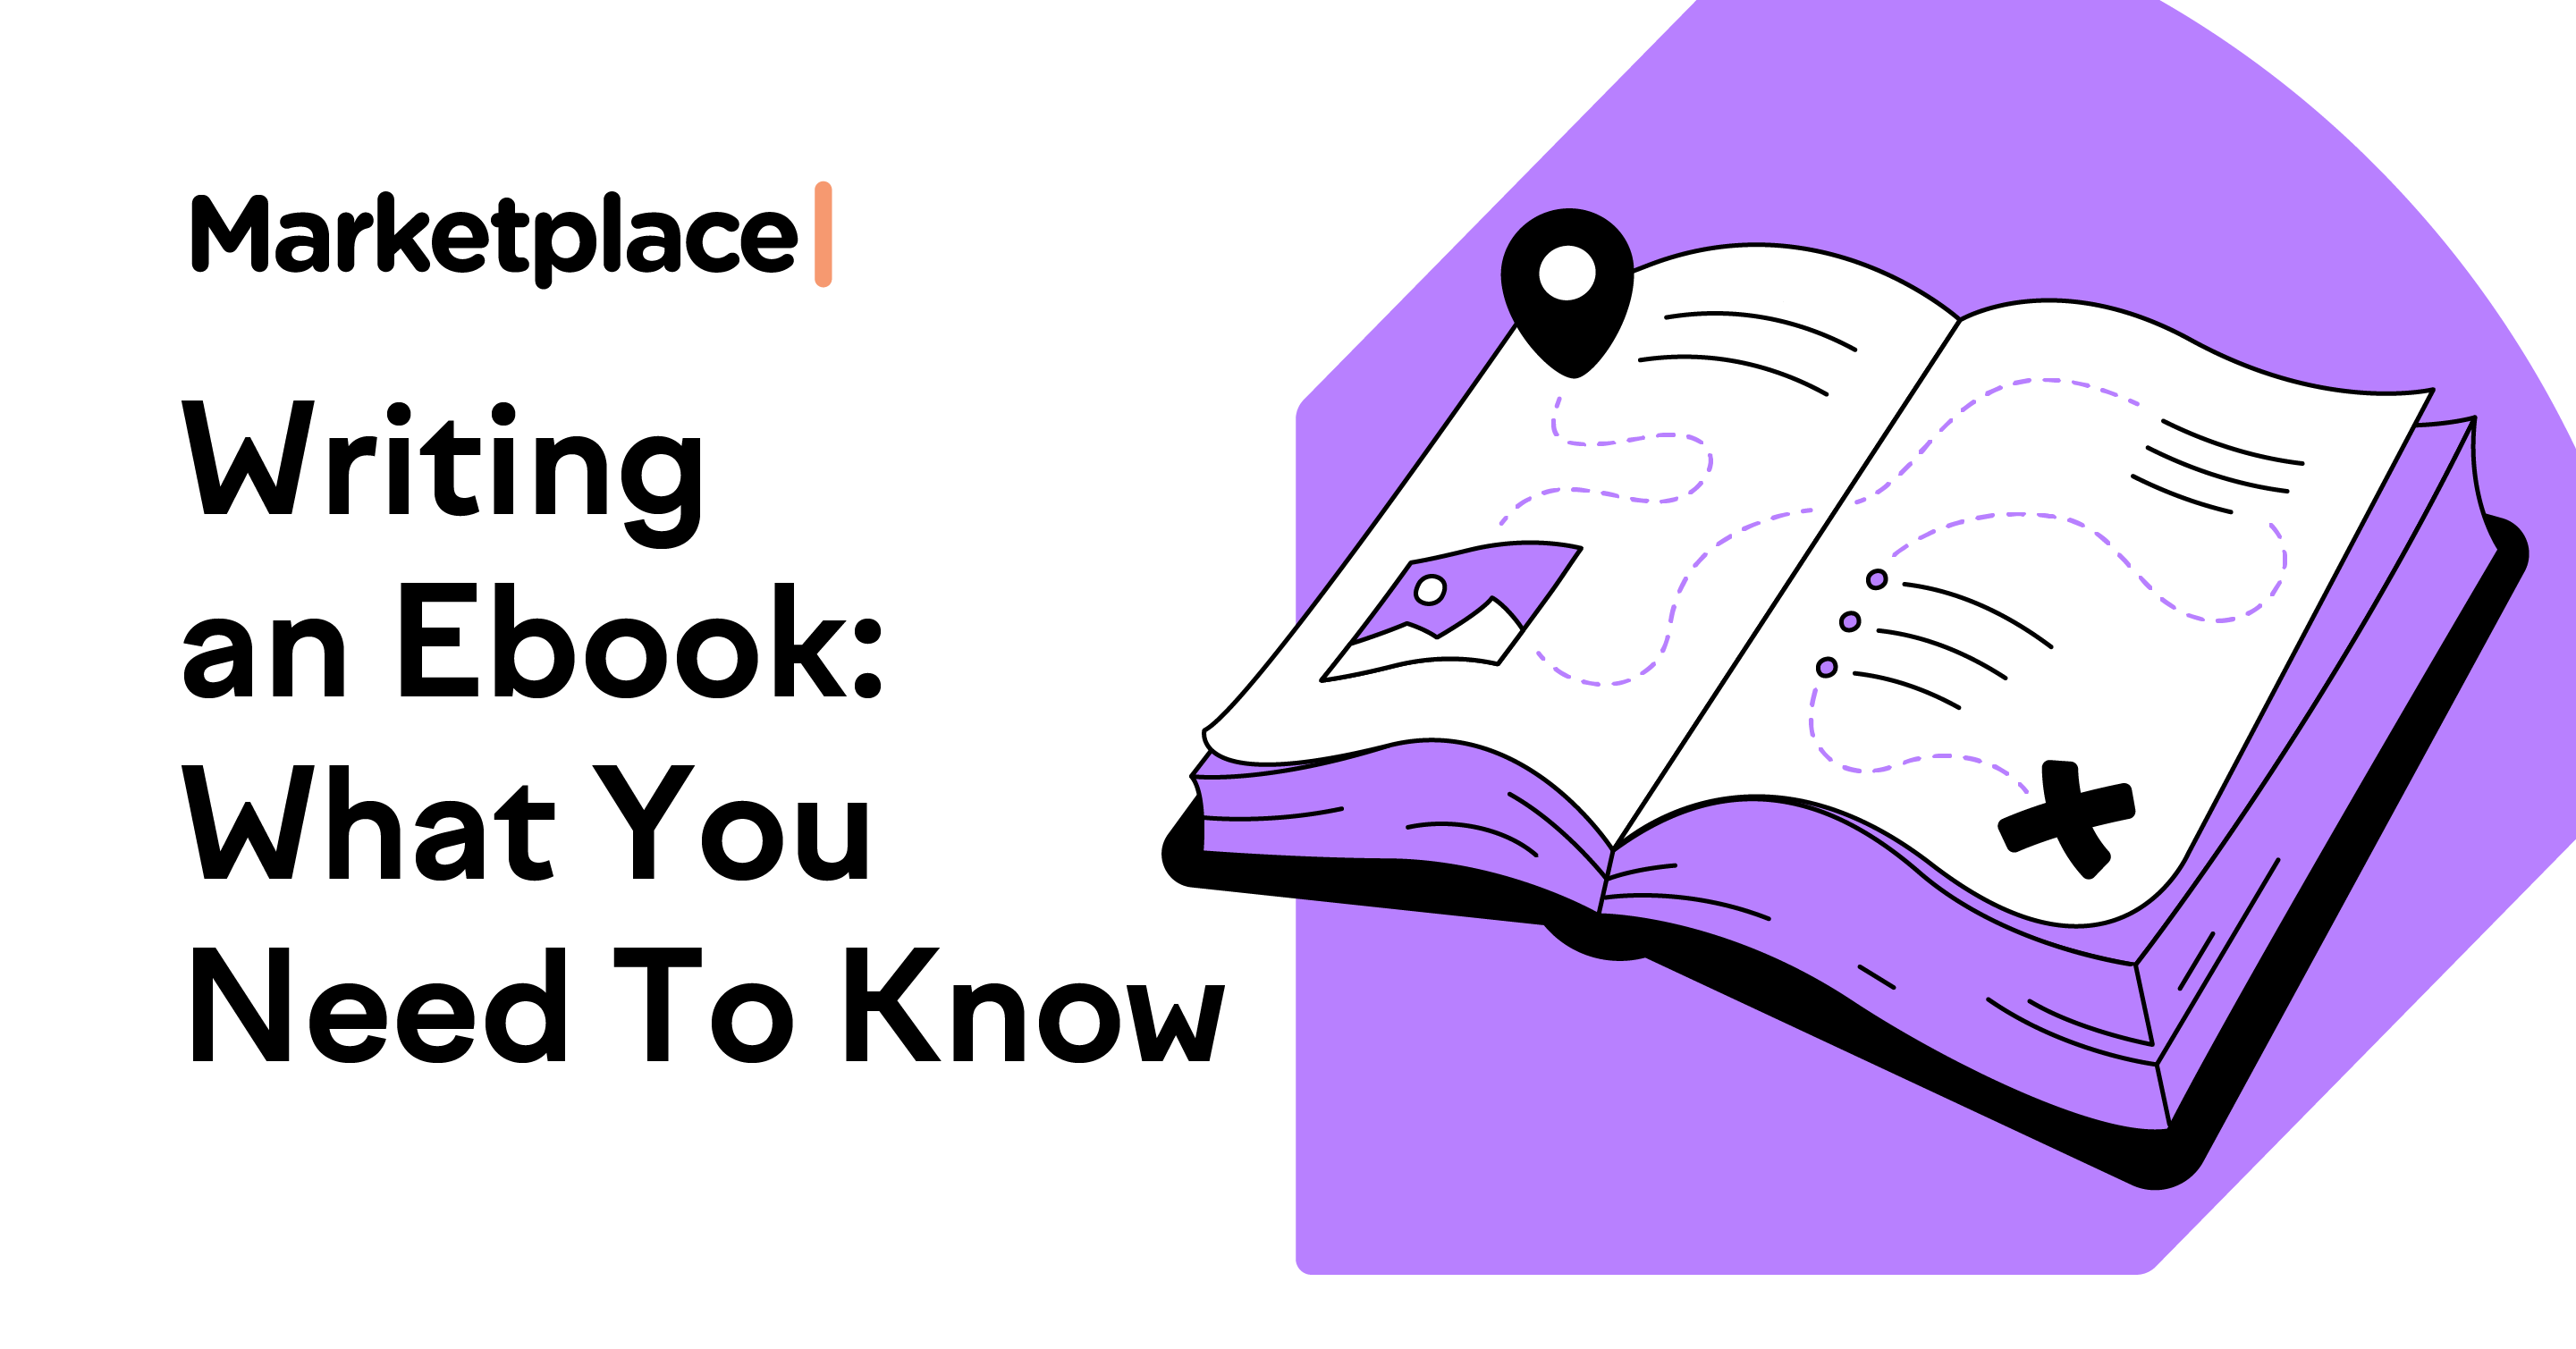 The Full Guide to Writing an Ebook [+Free Ebook Template]